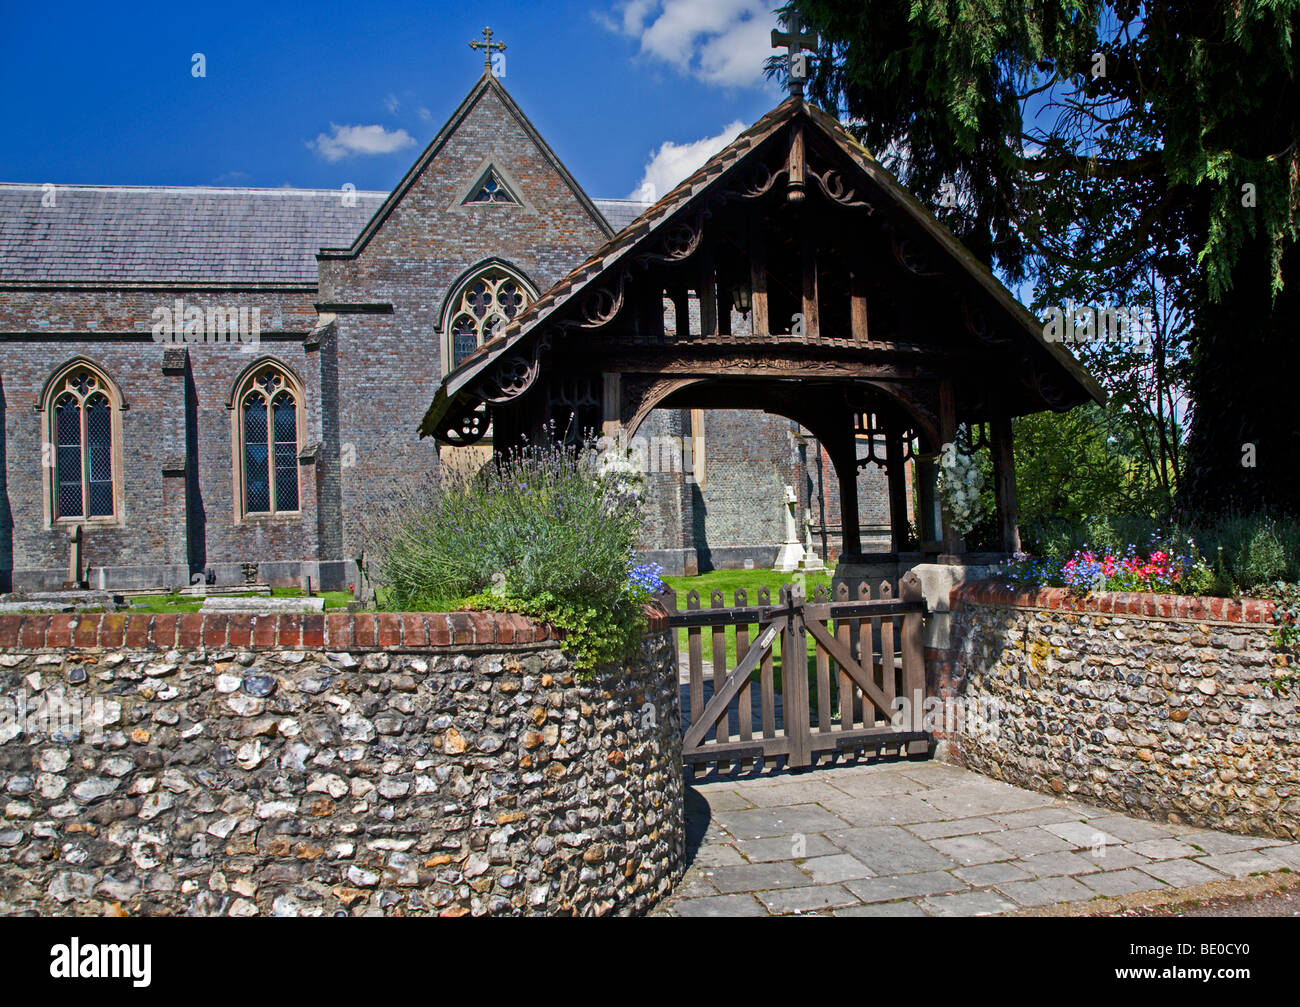 Lych Gate at St Matthews Church, Otterbourne, Hampshire, England - Stock Image